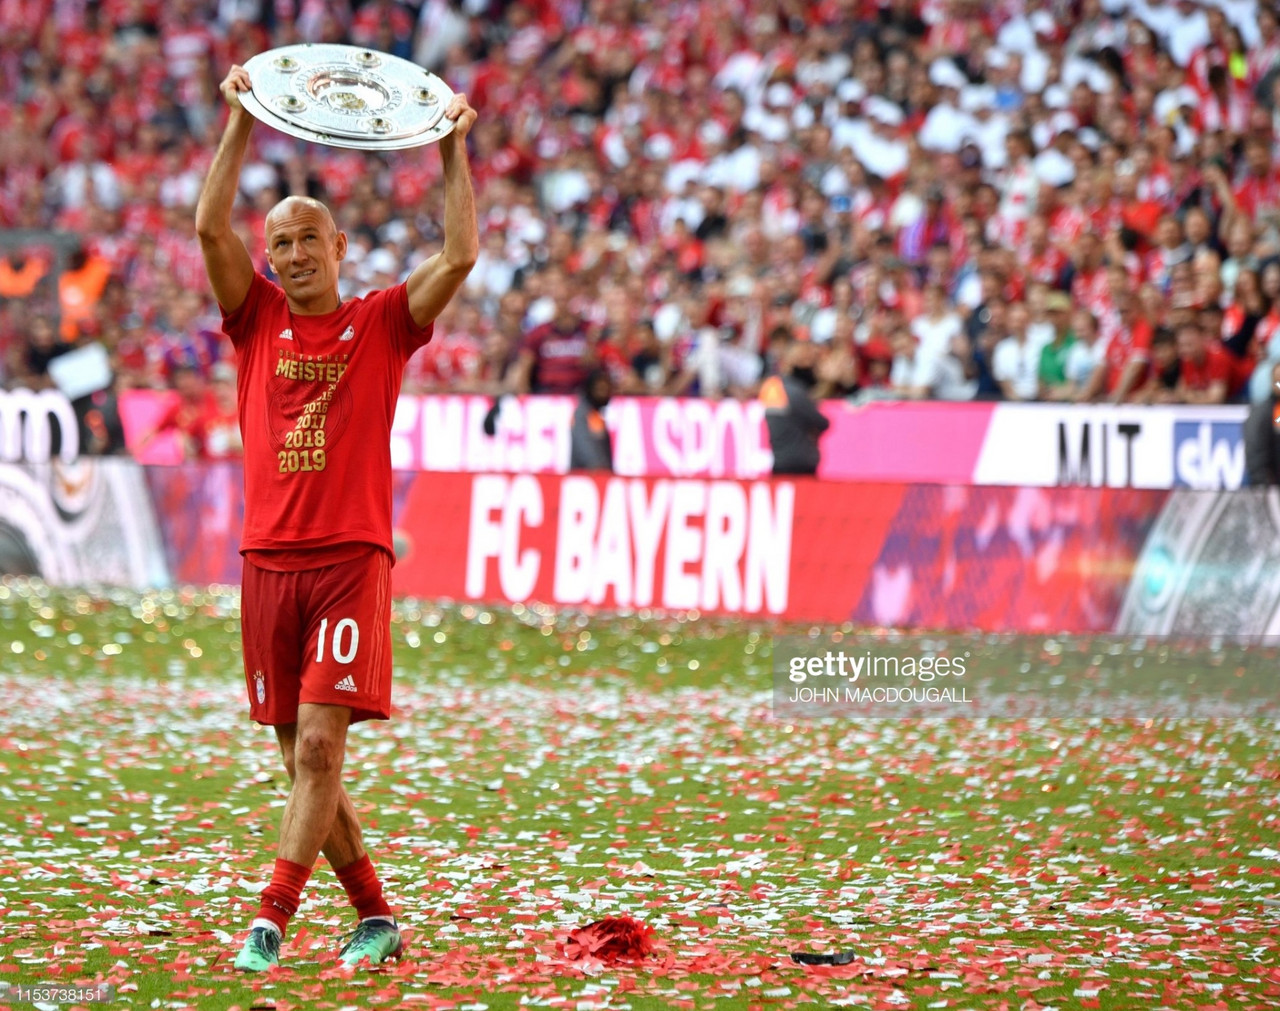 Ajern Robben retires from football